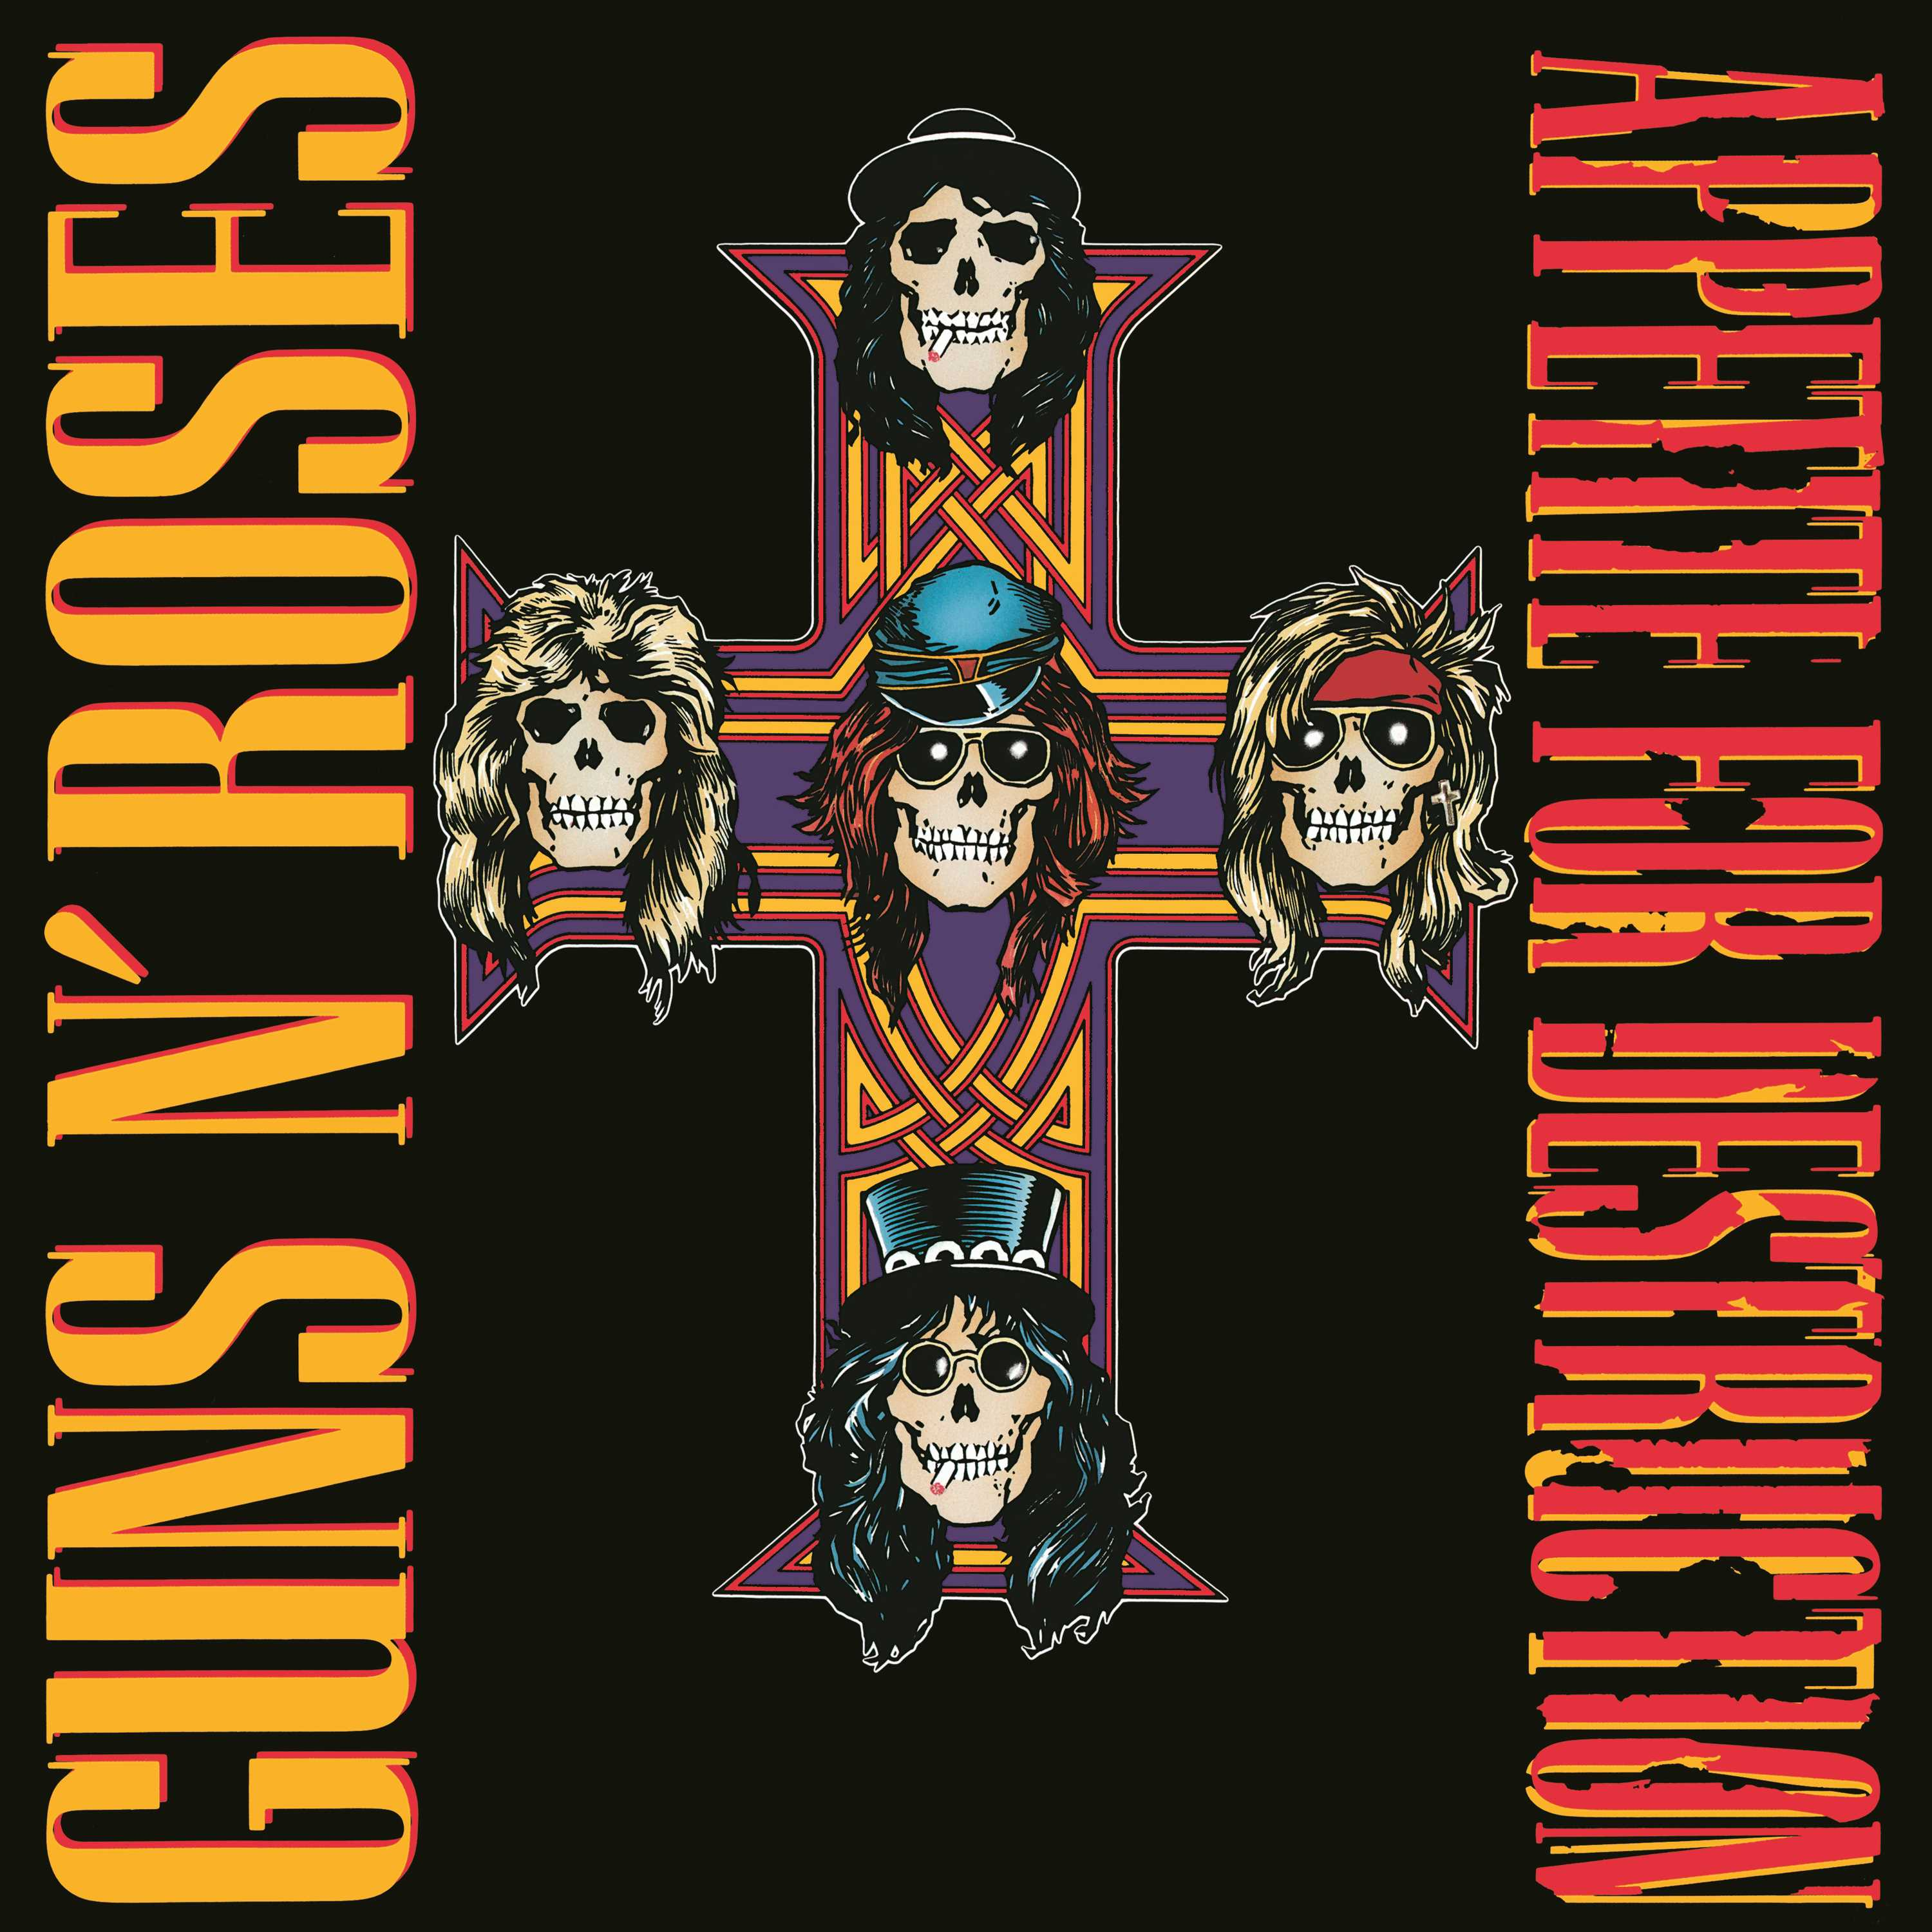 Featured Artist - Guns N' Roses